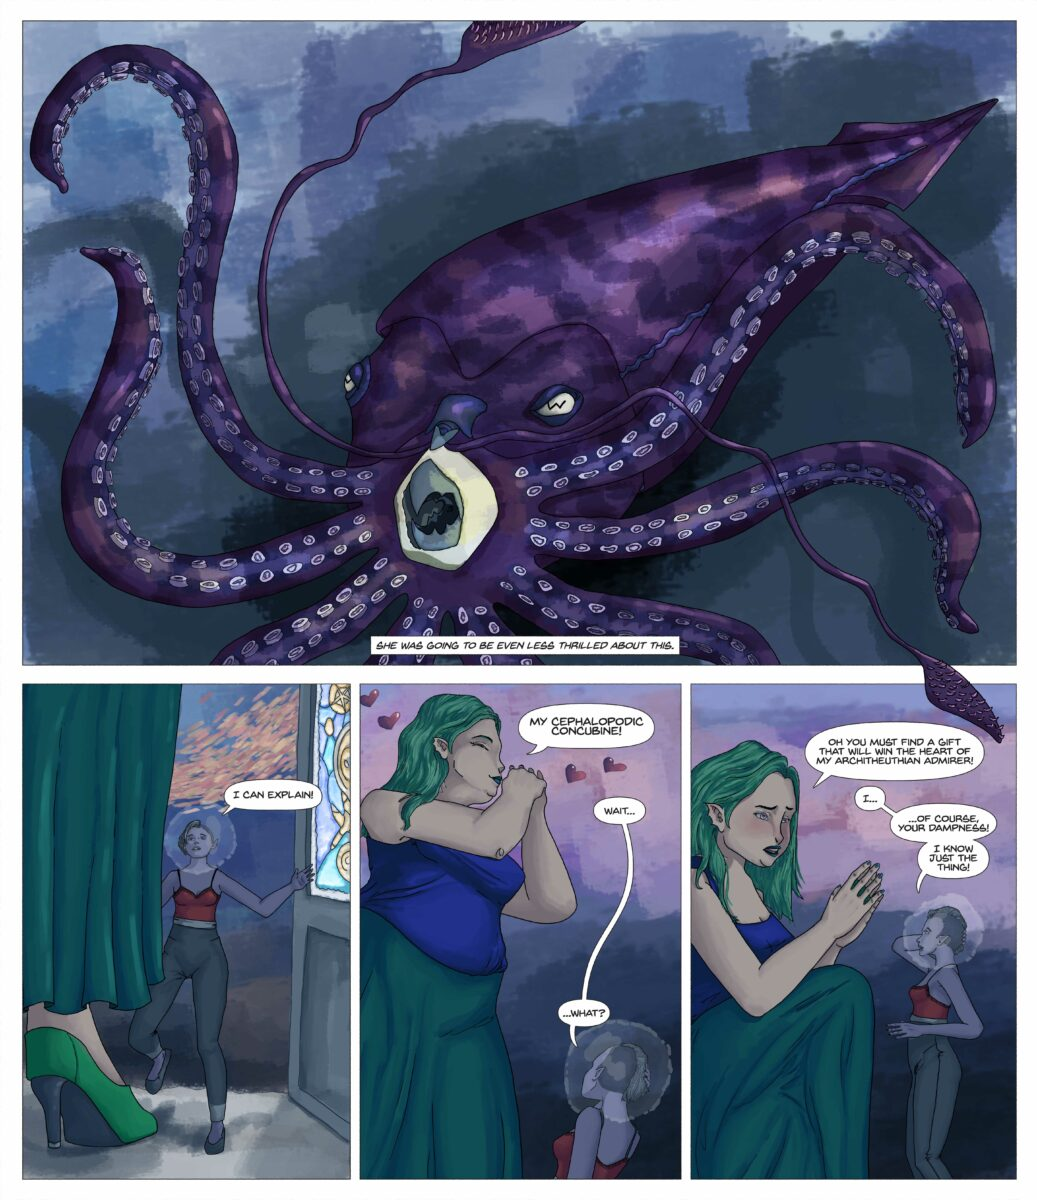 The Kraken is angry, but the Nenenore is smitten. She asks Olive to get a gift for the Kraken to win her love.